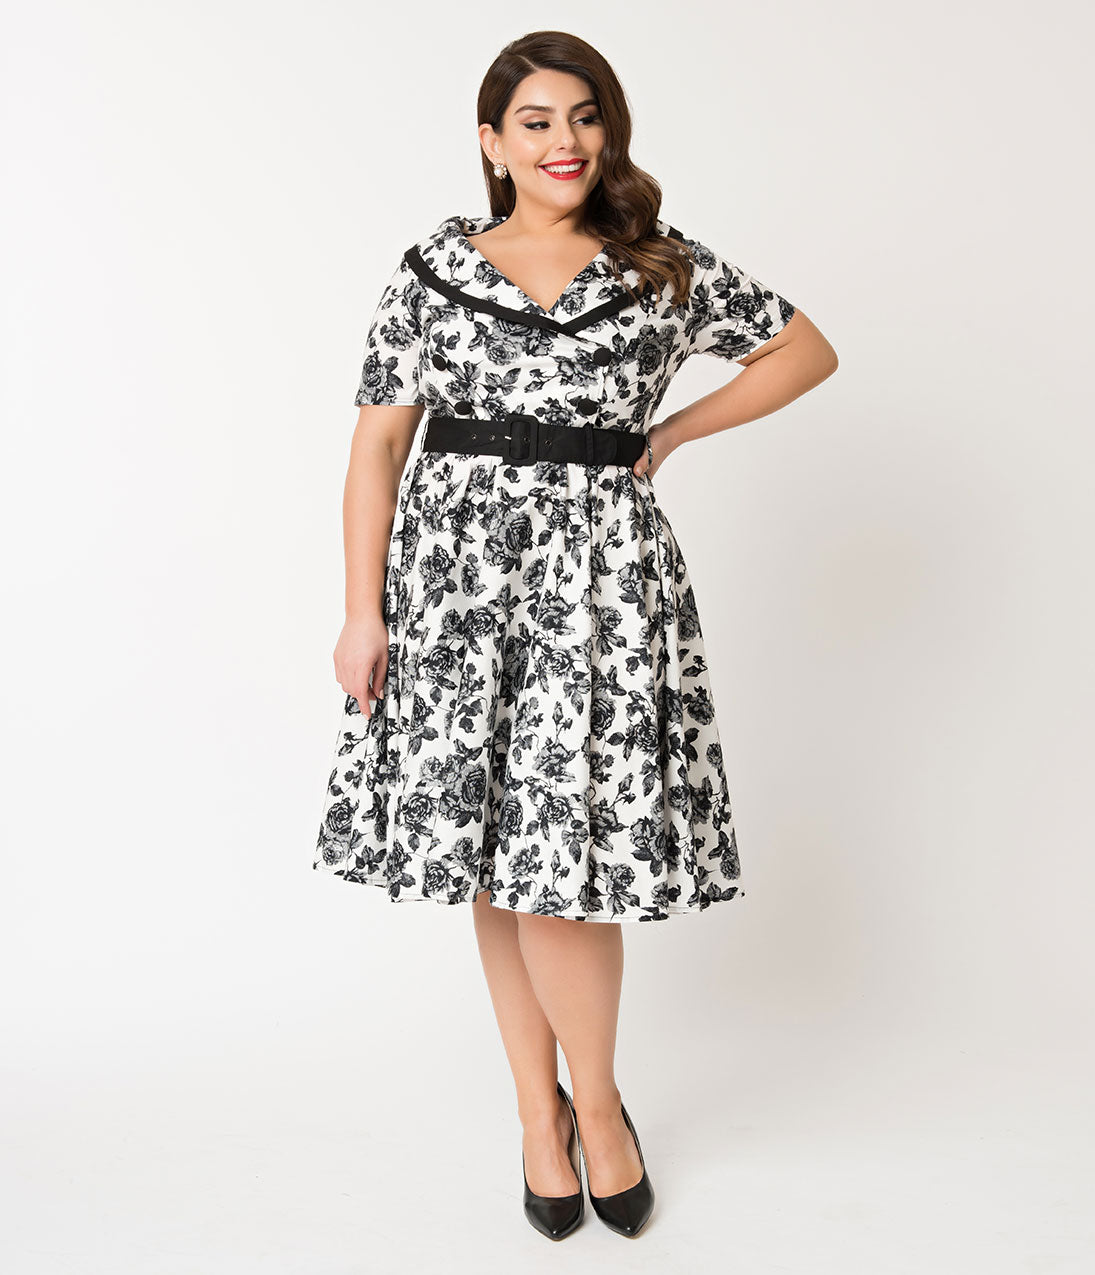 1950s Plus Size Dresses, Clothing and Costumes Hell Bunny Plus Size 1950S Style White  Black Floral Honor Swing Dress $62.00 AT vintagedancer.com